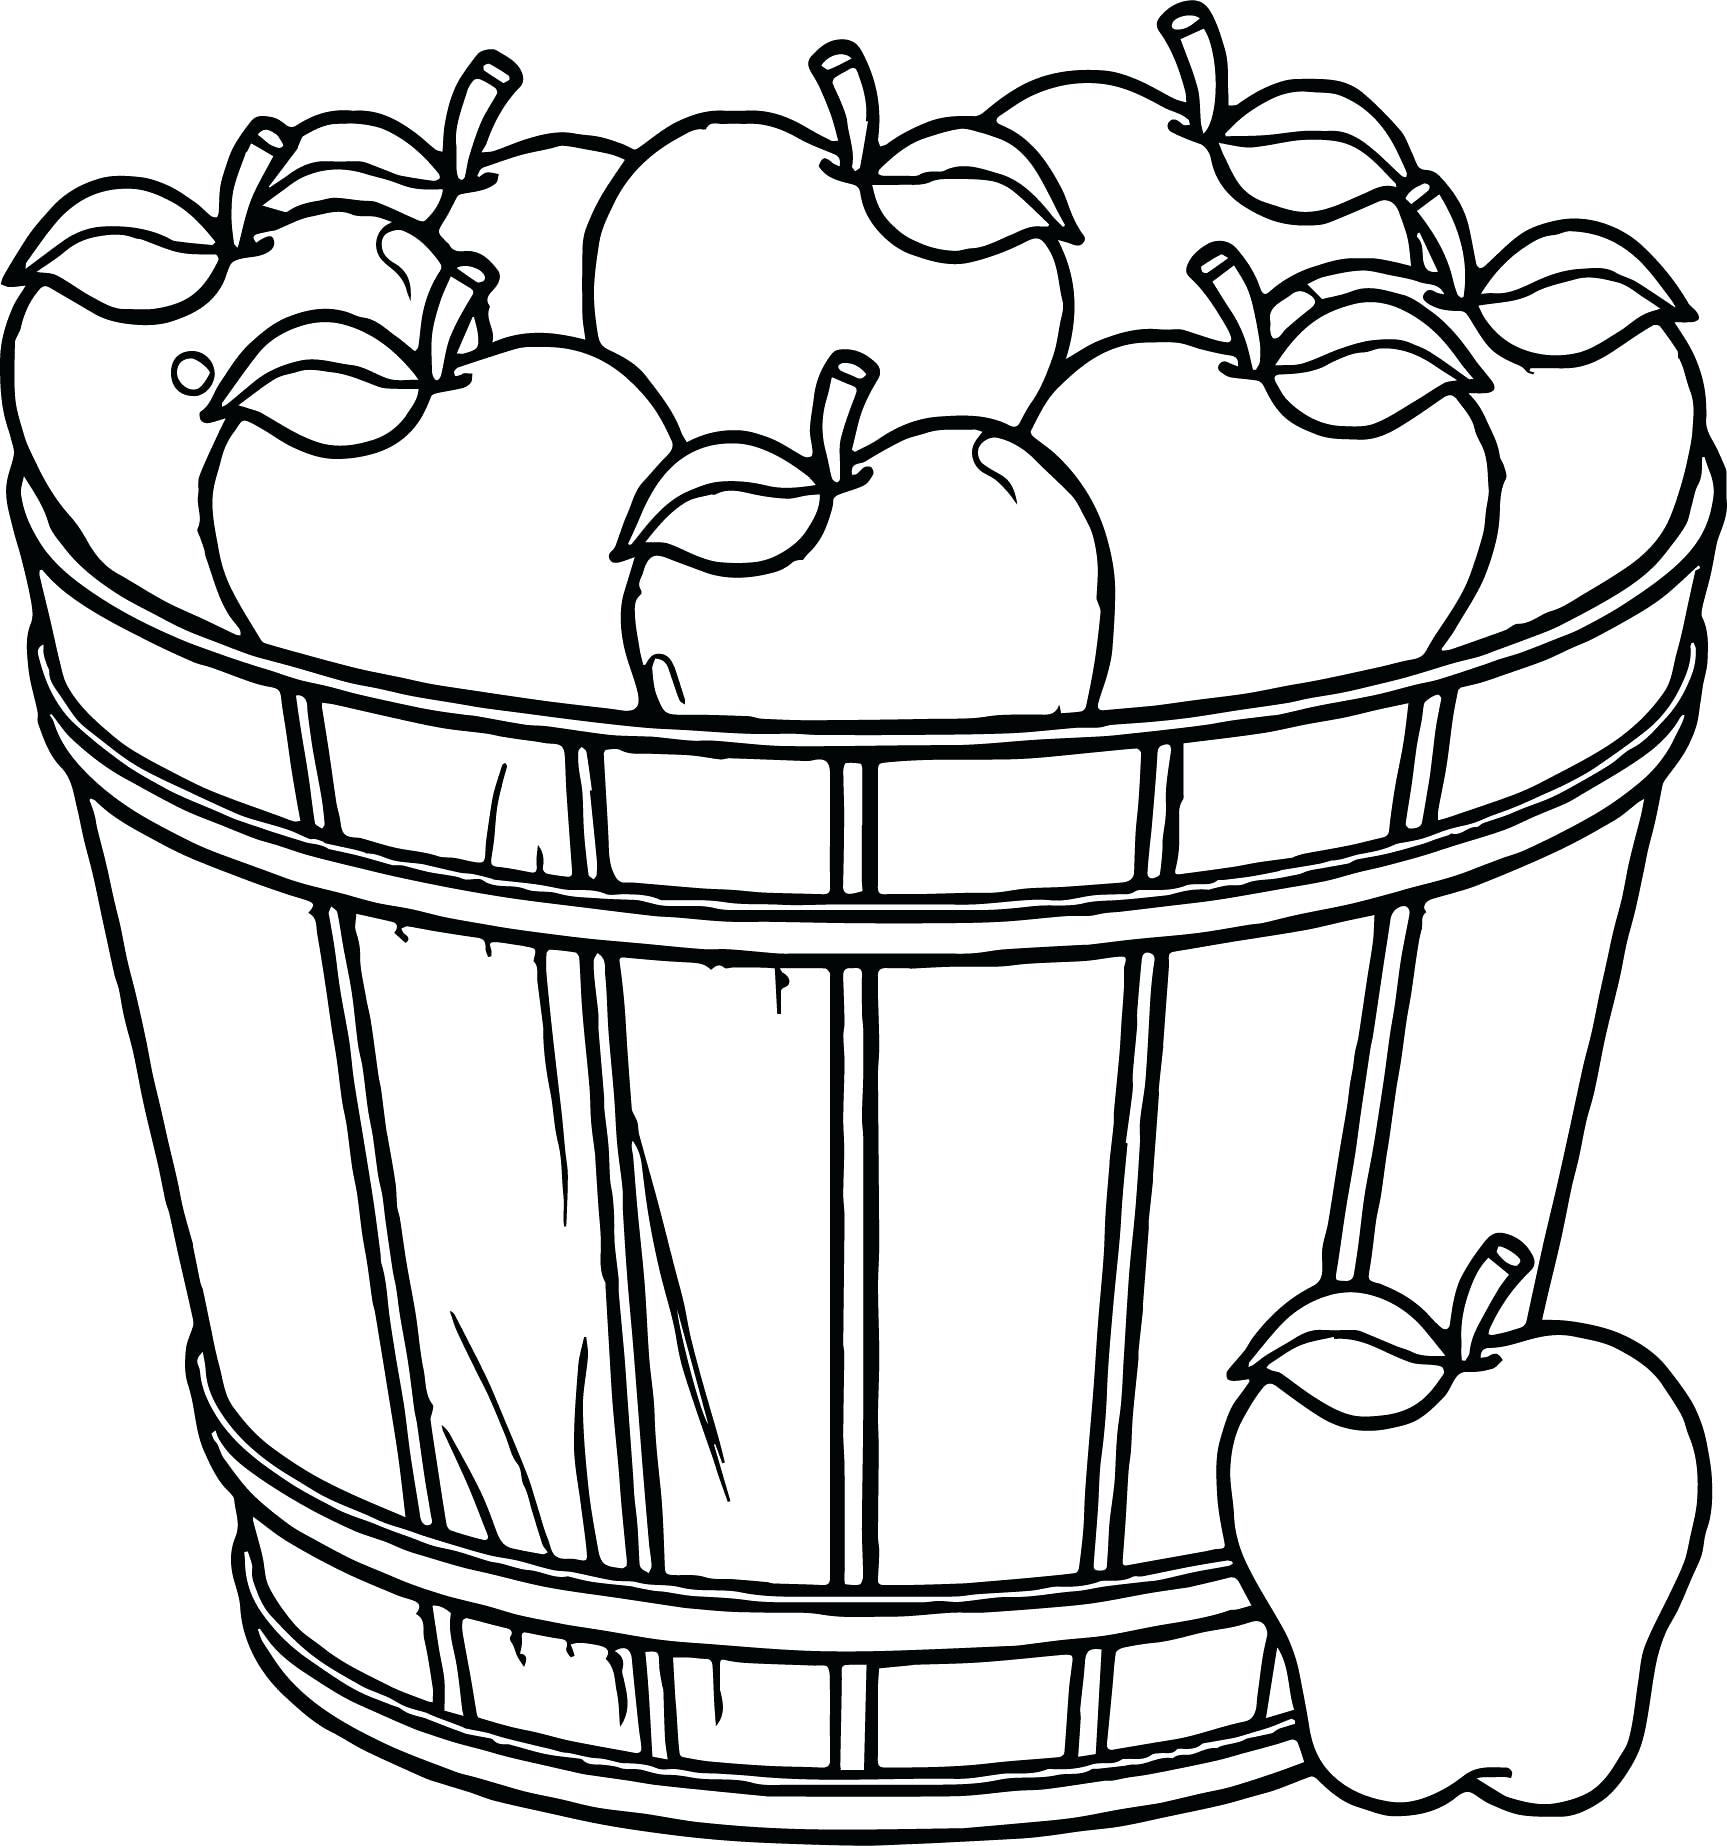 1727x1846 Awesome Fruit Basket Coloring Pages Print Design Printable